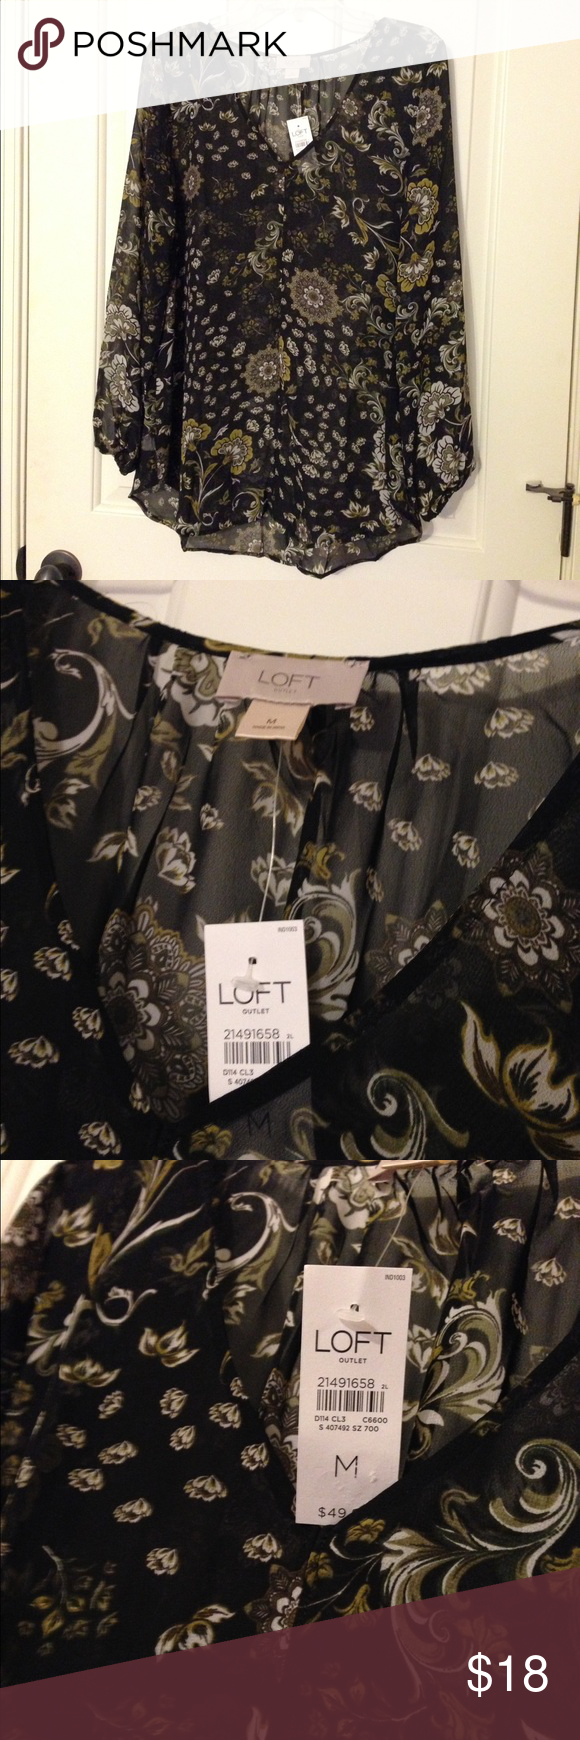 NWT medium LOFT sheer black floral shirt top NEW with tags! Black Ann Taylor Loft shirt with floral design. Sheer. Smoke and pet free. LOFT Tops Blouses